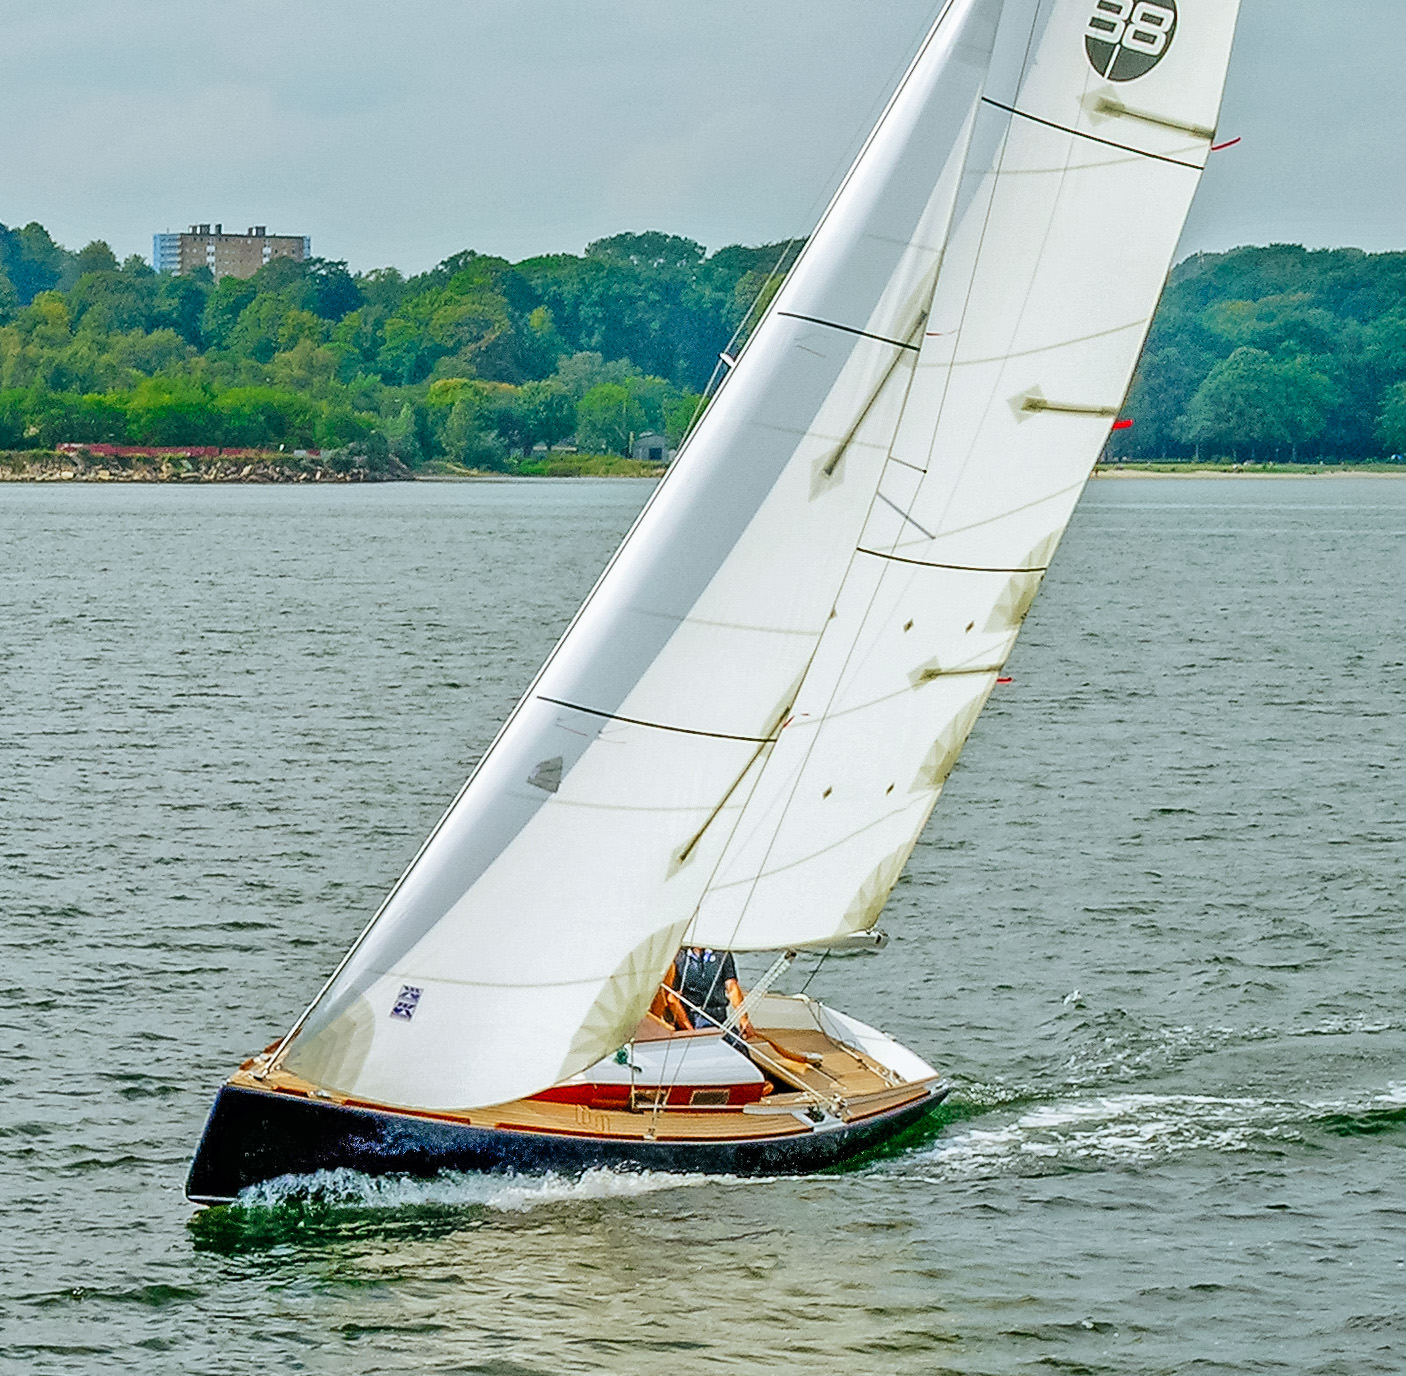 Modern classic daysailer with Dacron roller-furling jib and mainsail.